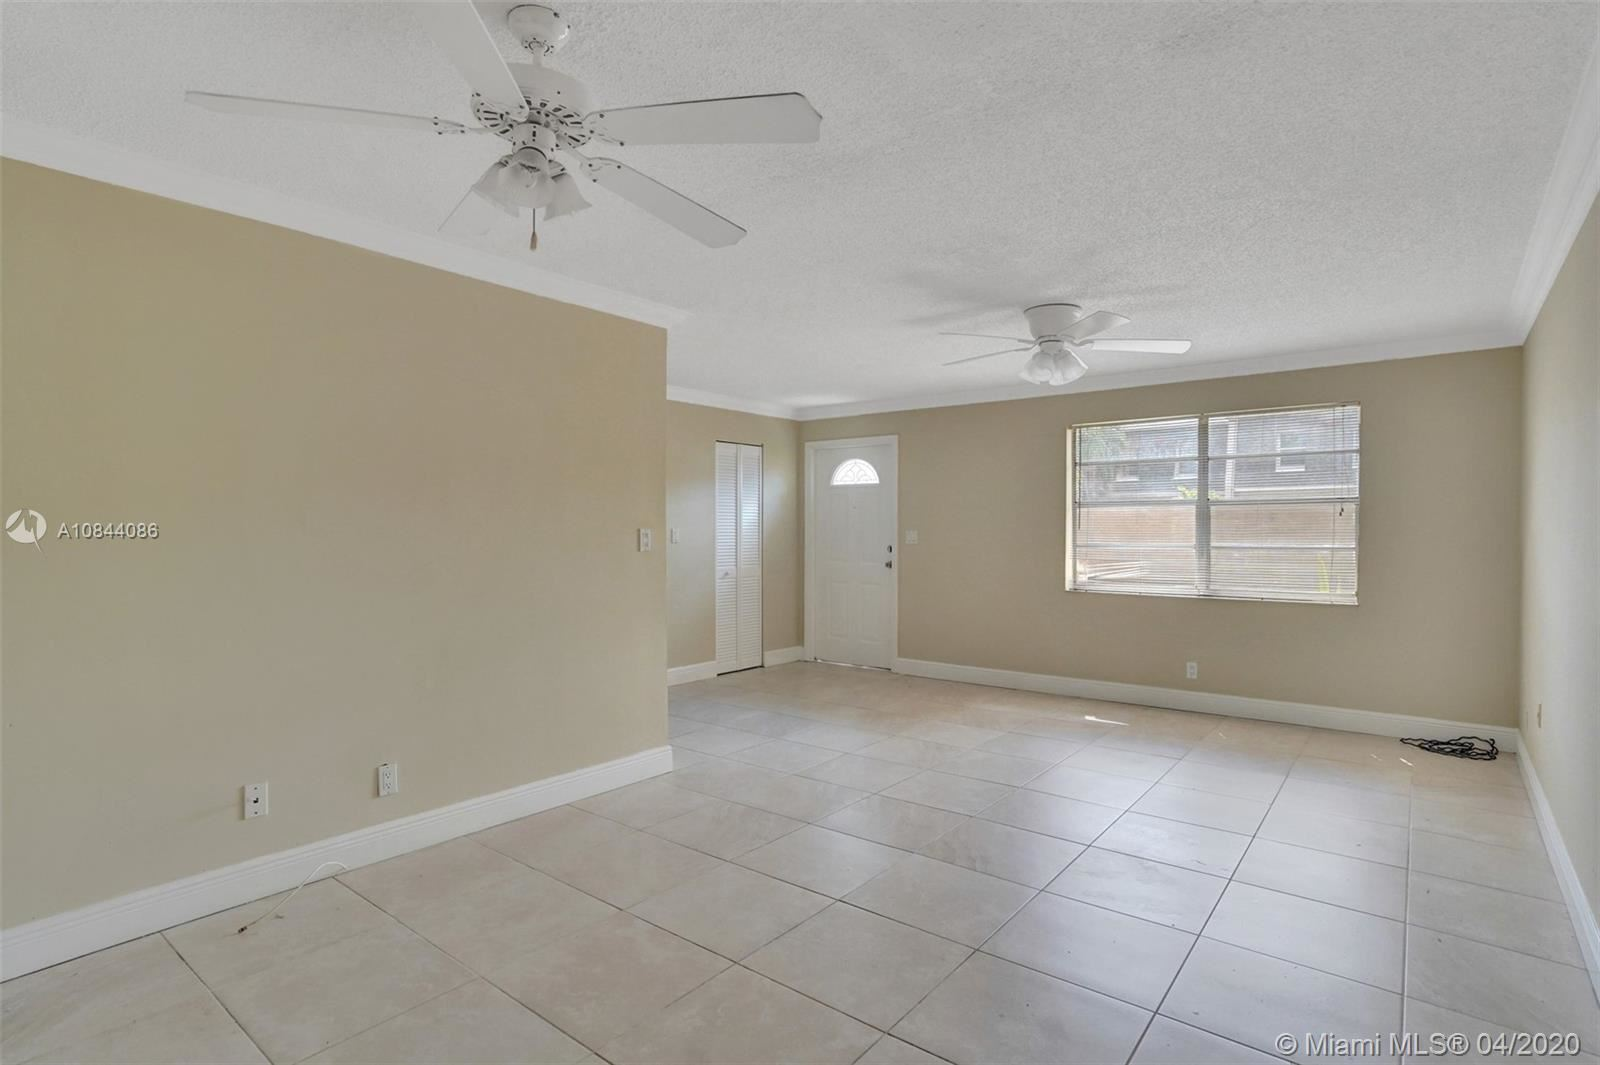 Photo of 3326 Quail Close #6, Pompano Beach, FL 33064 (MLS # A10844086)